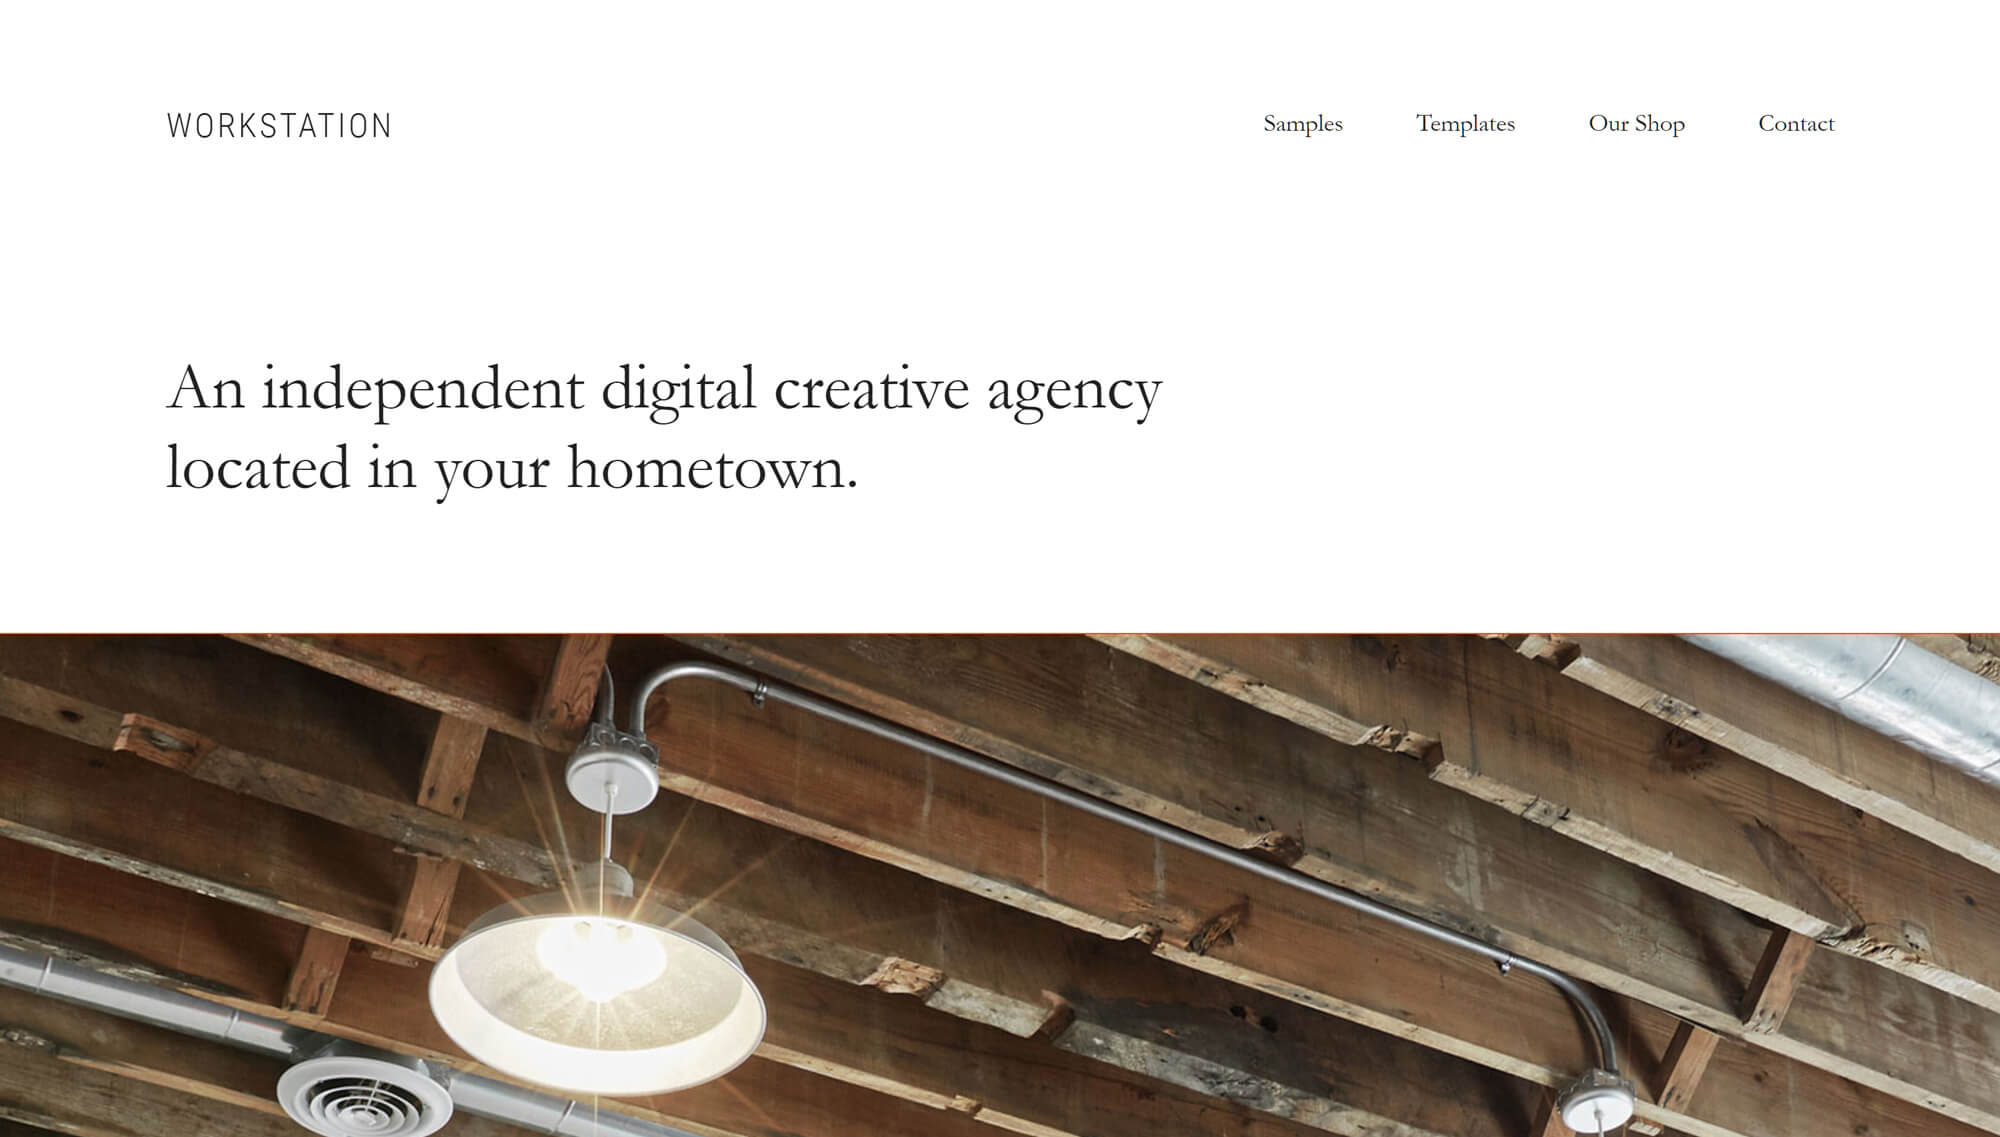 Workstation Pro Agency Theme